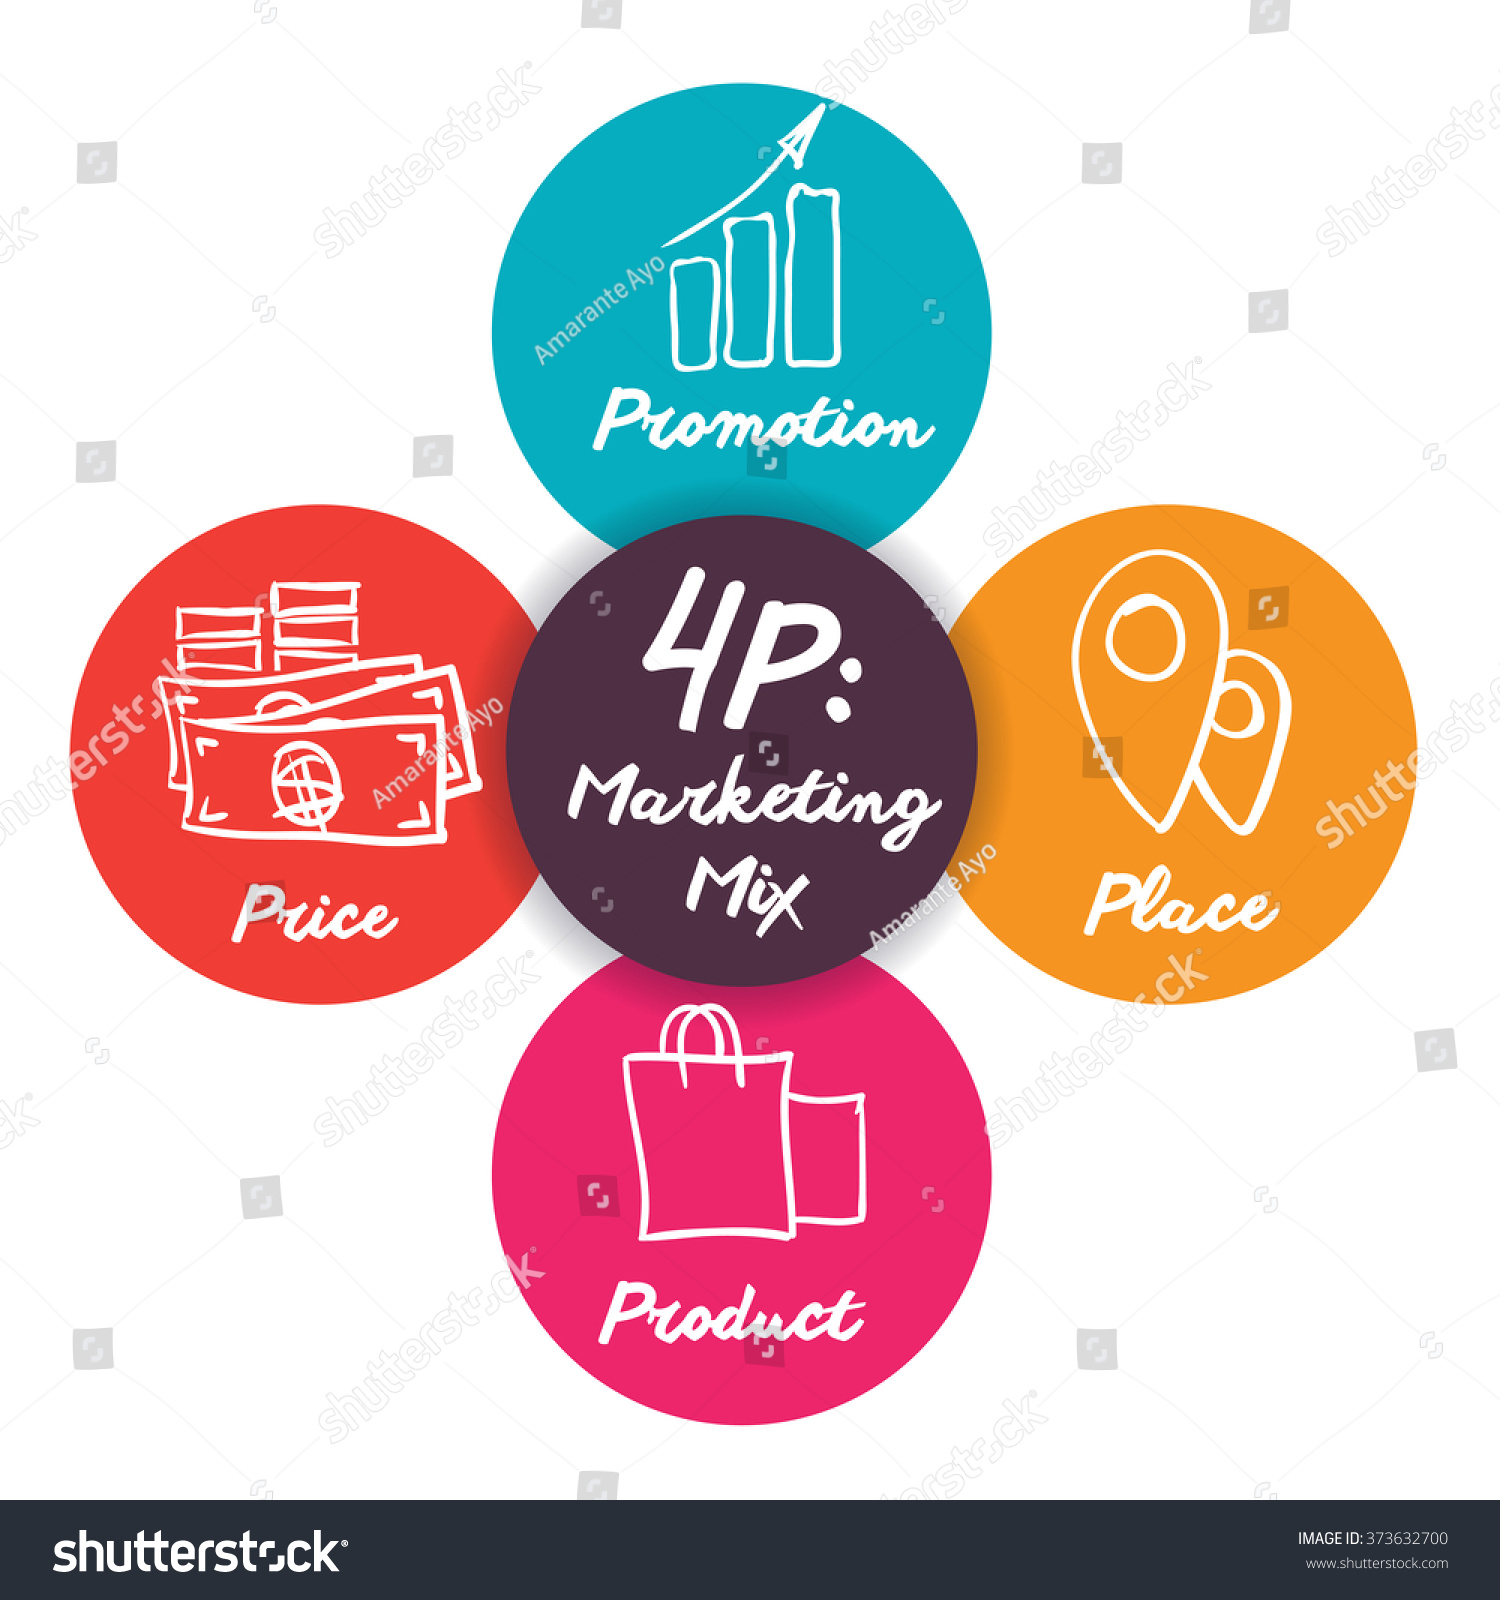 mimco marketing mix broadly speaking, in order to maximise profits, different firms use distinct tools to perform strategy and decisions, such as swot analysis, pestel analysis and marketing mix analysis.